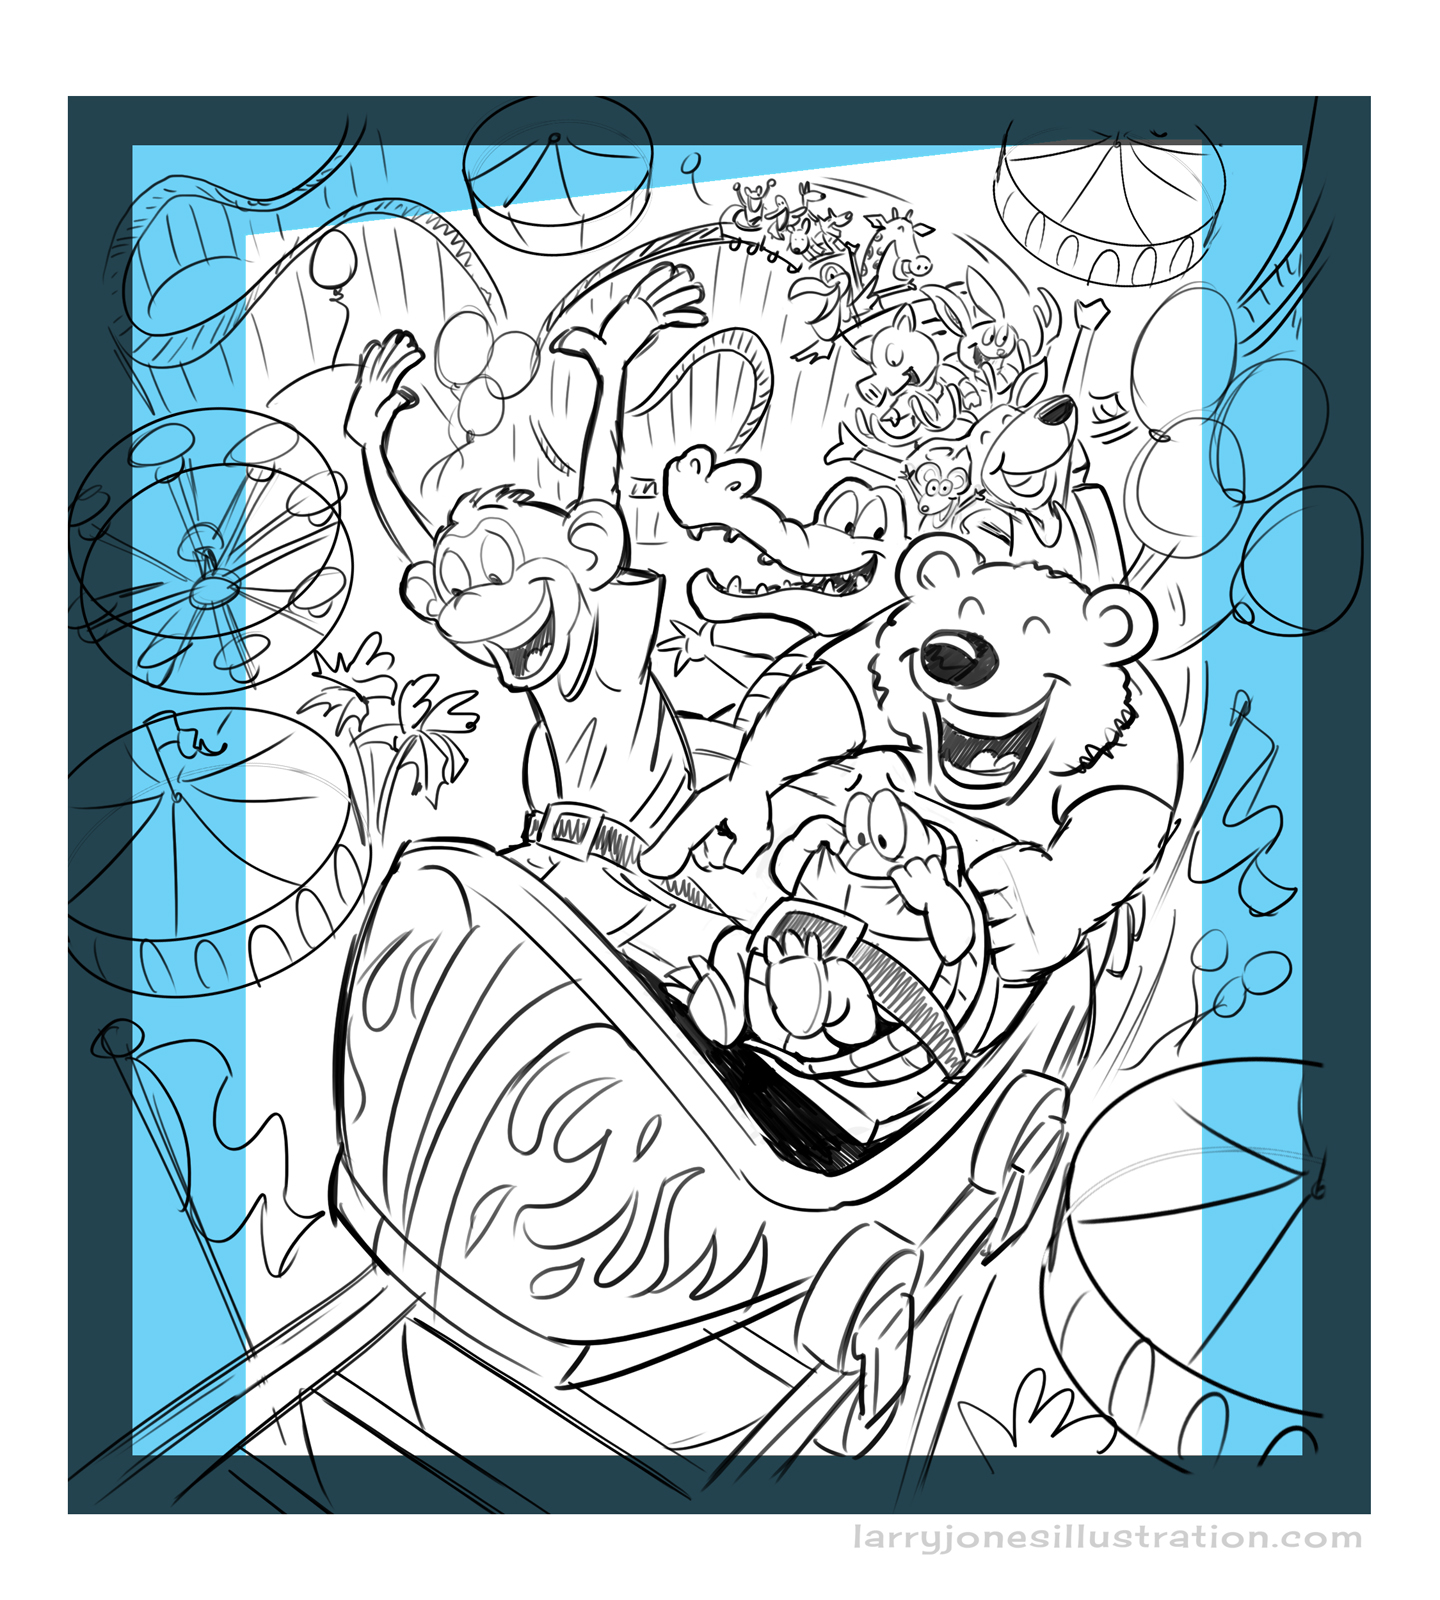 Here's the original sketch with cropped areas indicated for cover and interior activity pages.